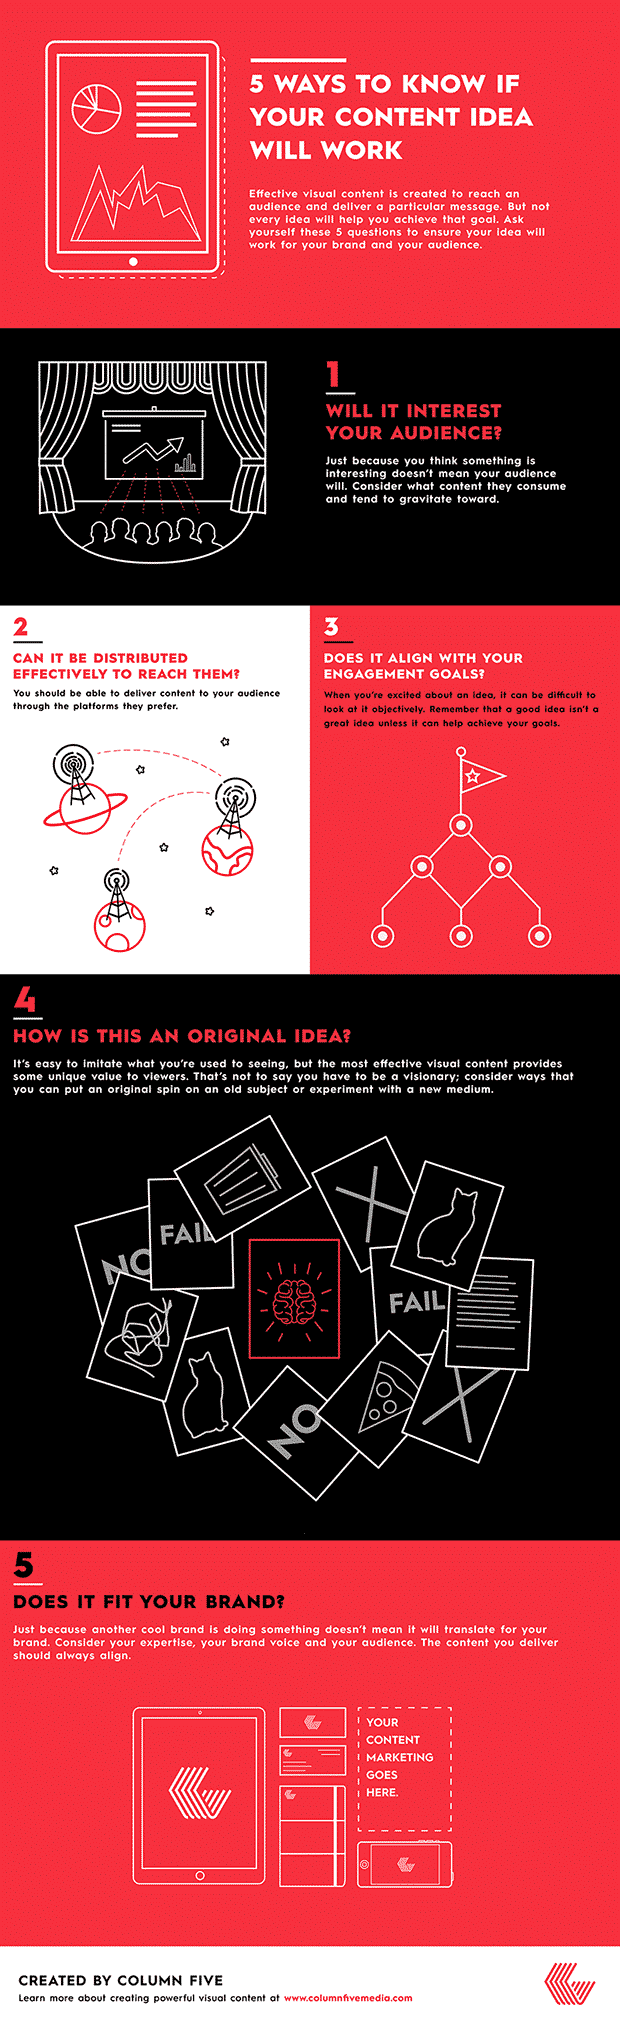 Will your idea work ?